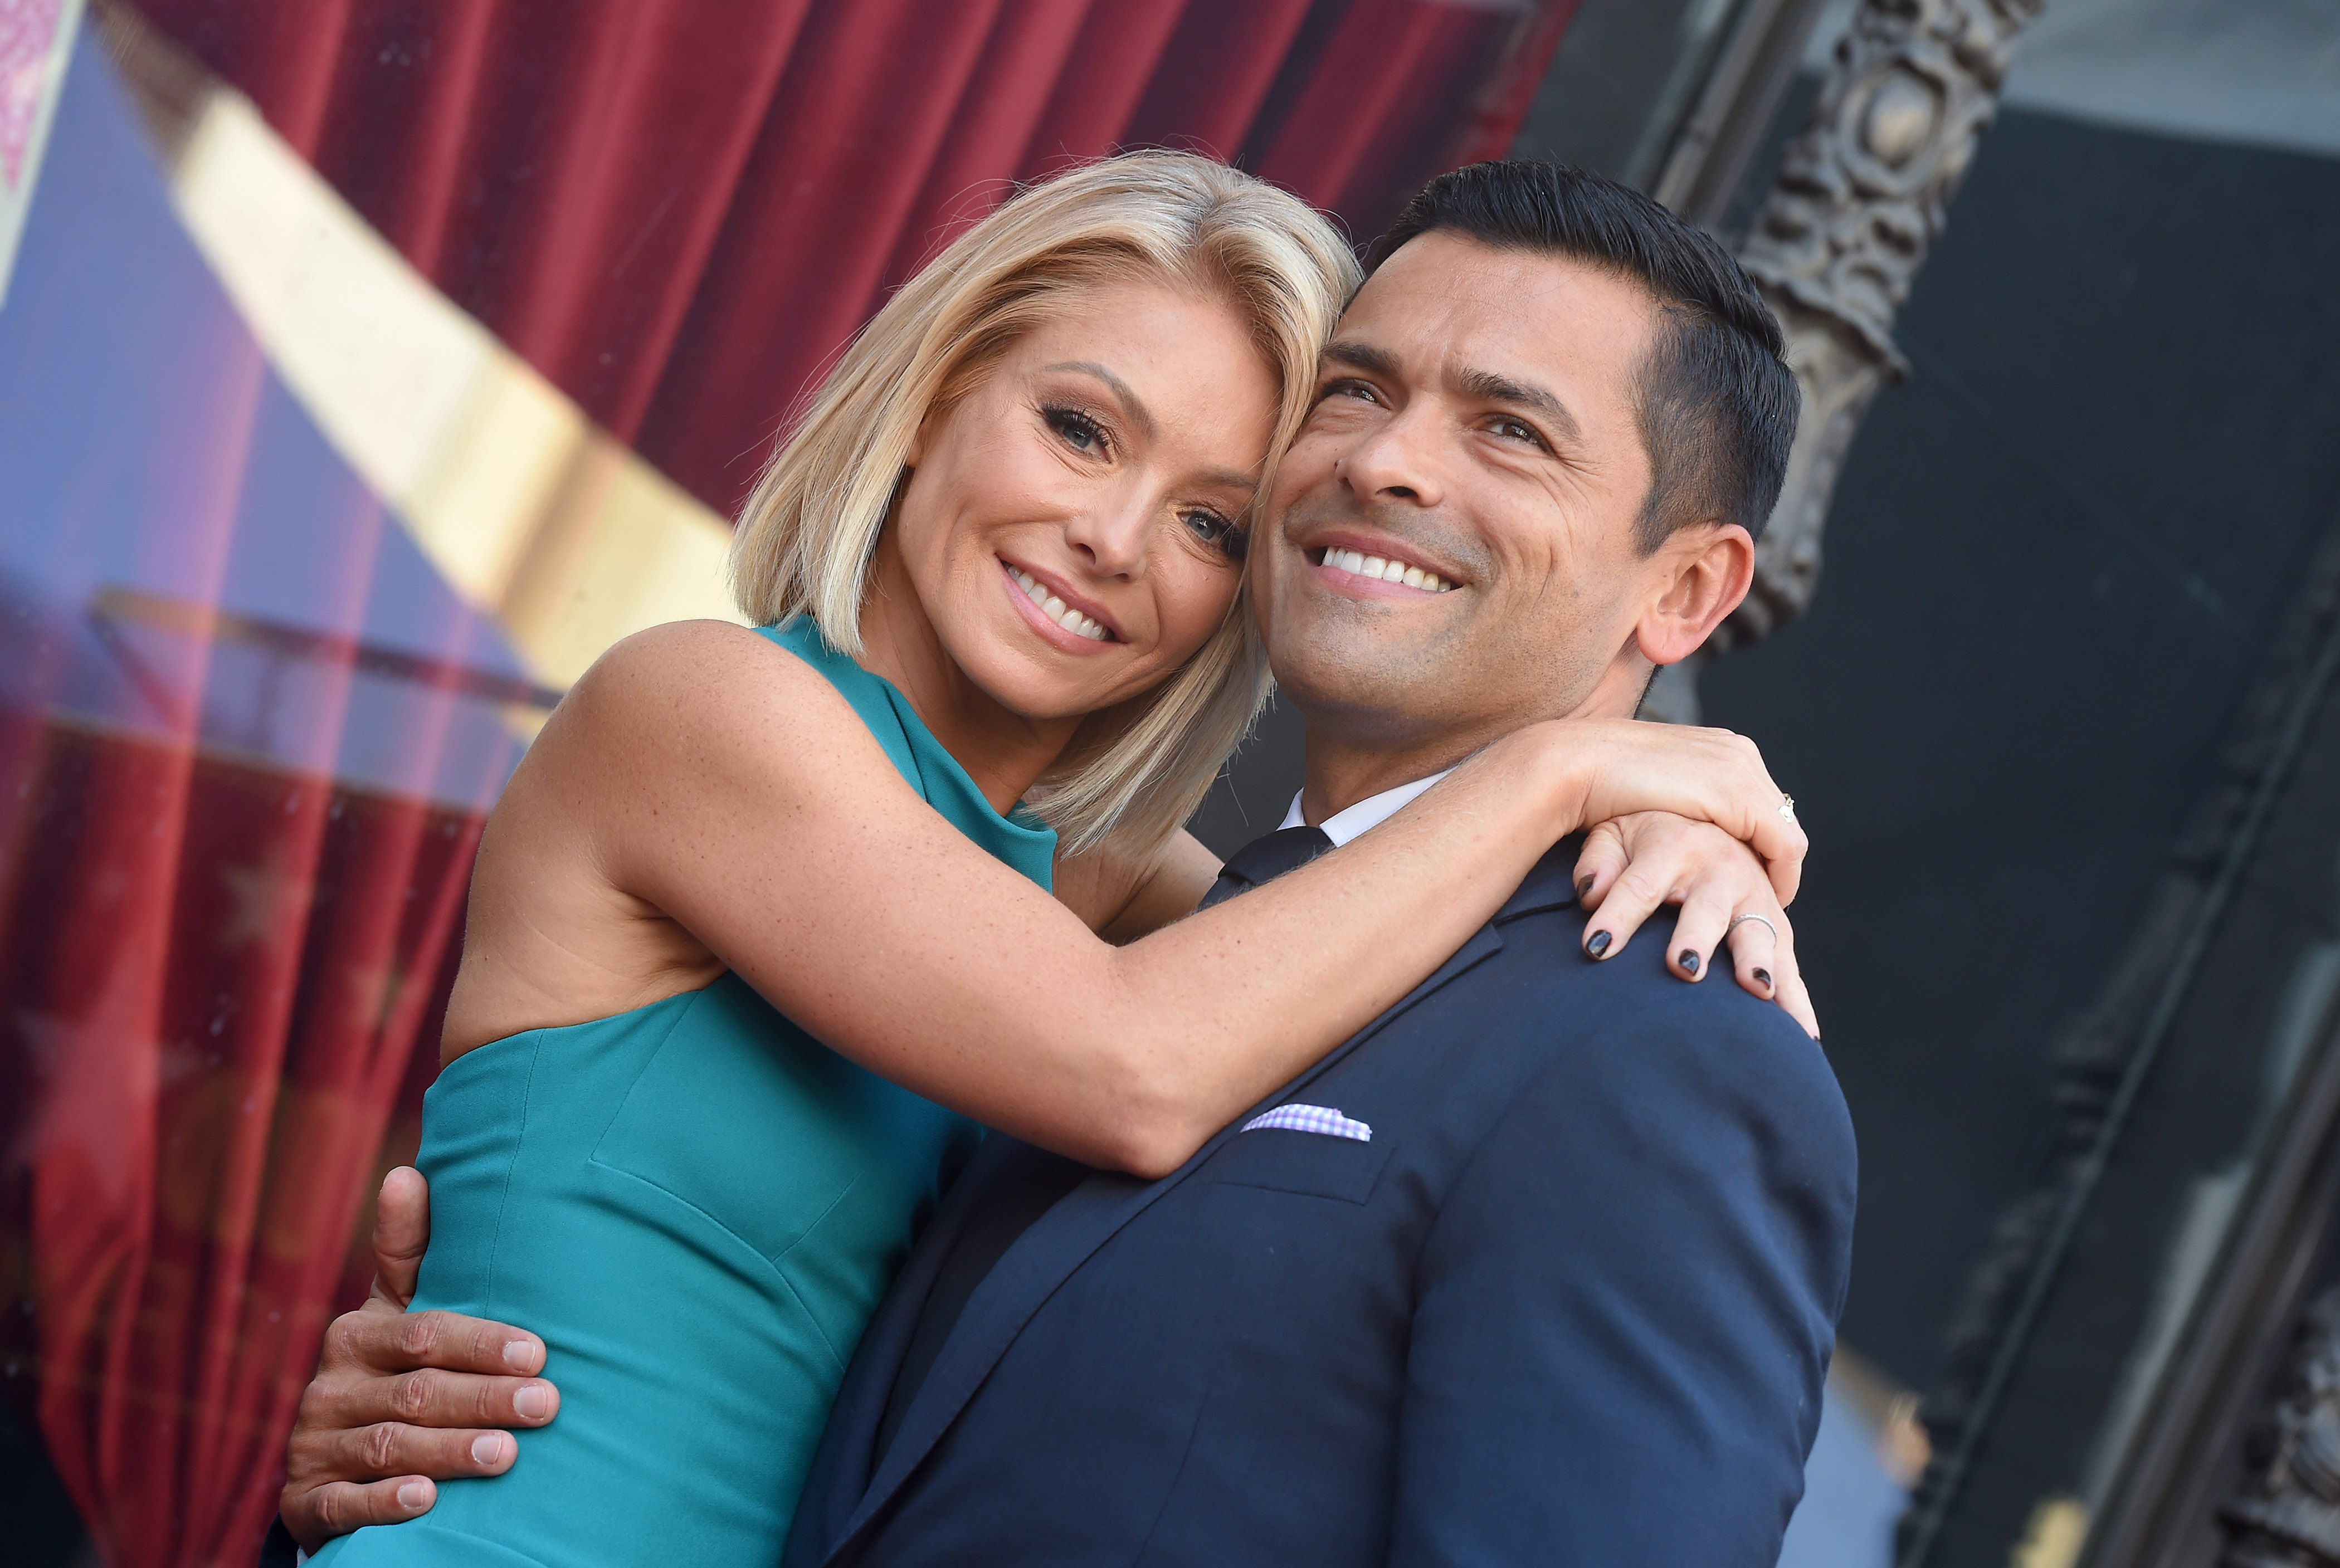 Dwts val dating kelly